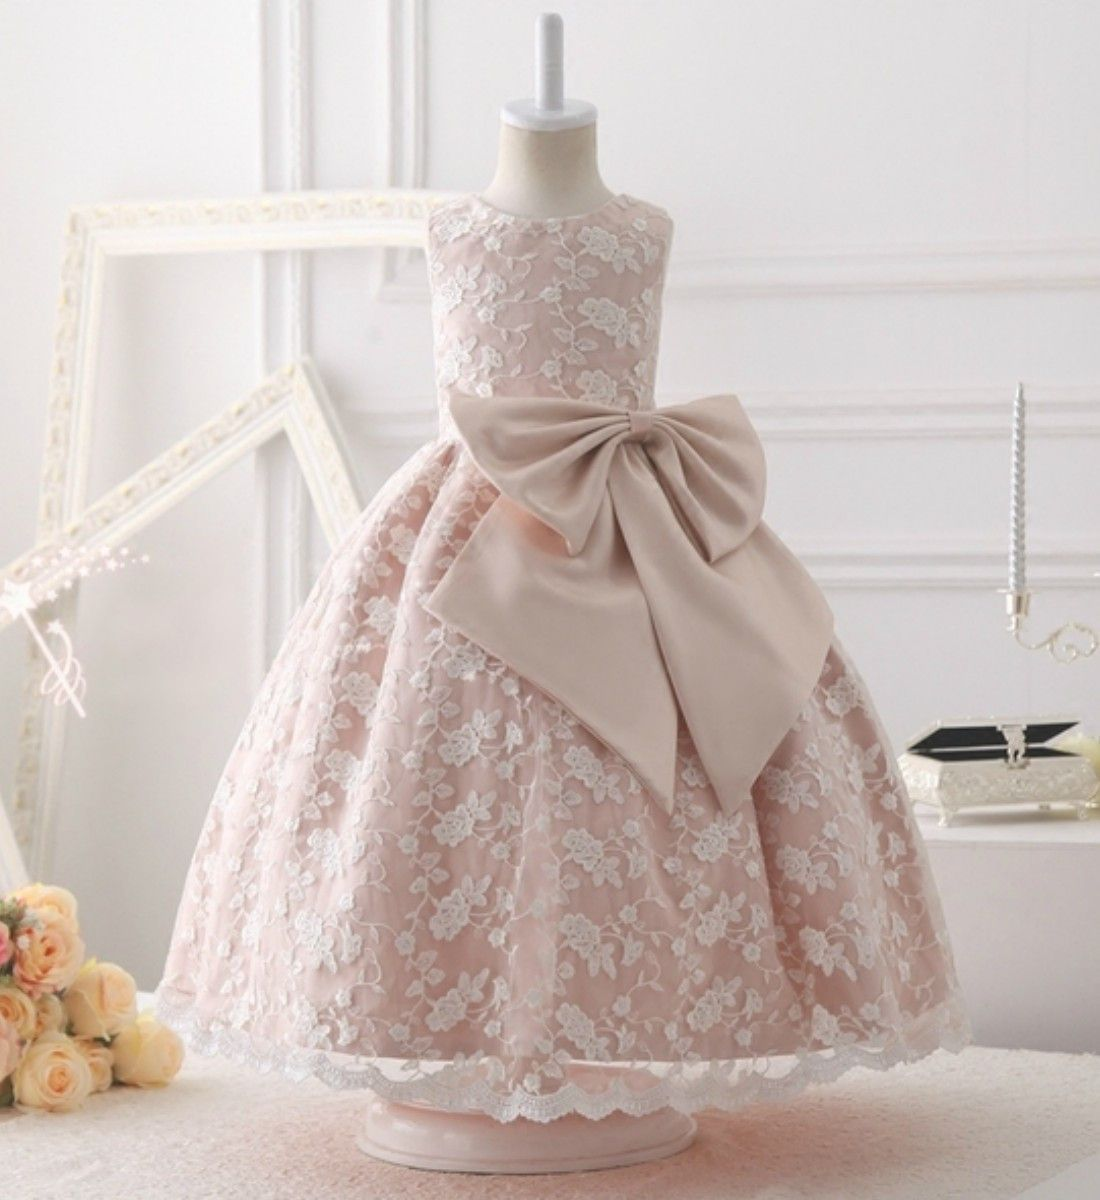 Embroidery lace gown embroidery gowns and big bows